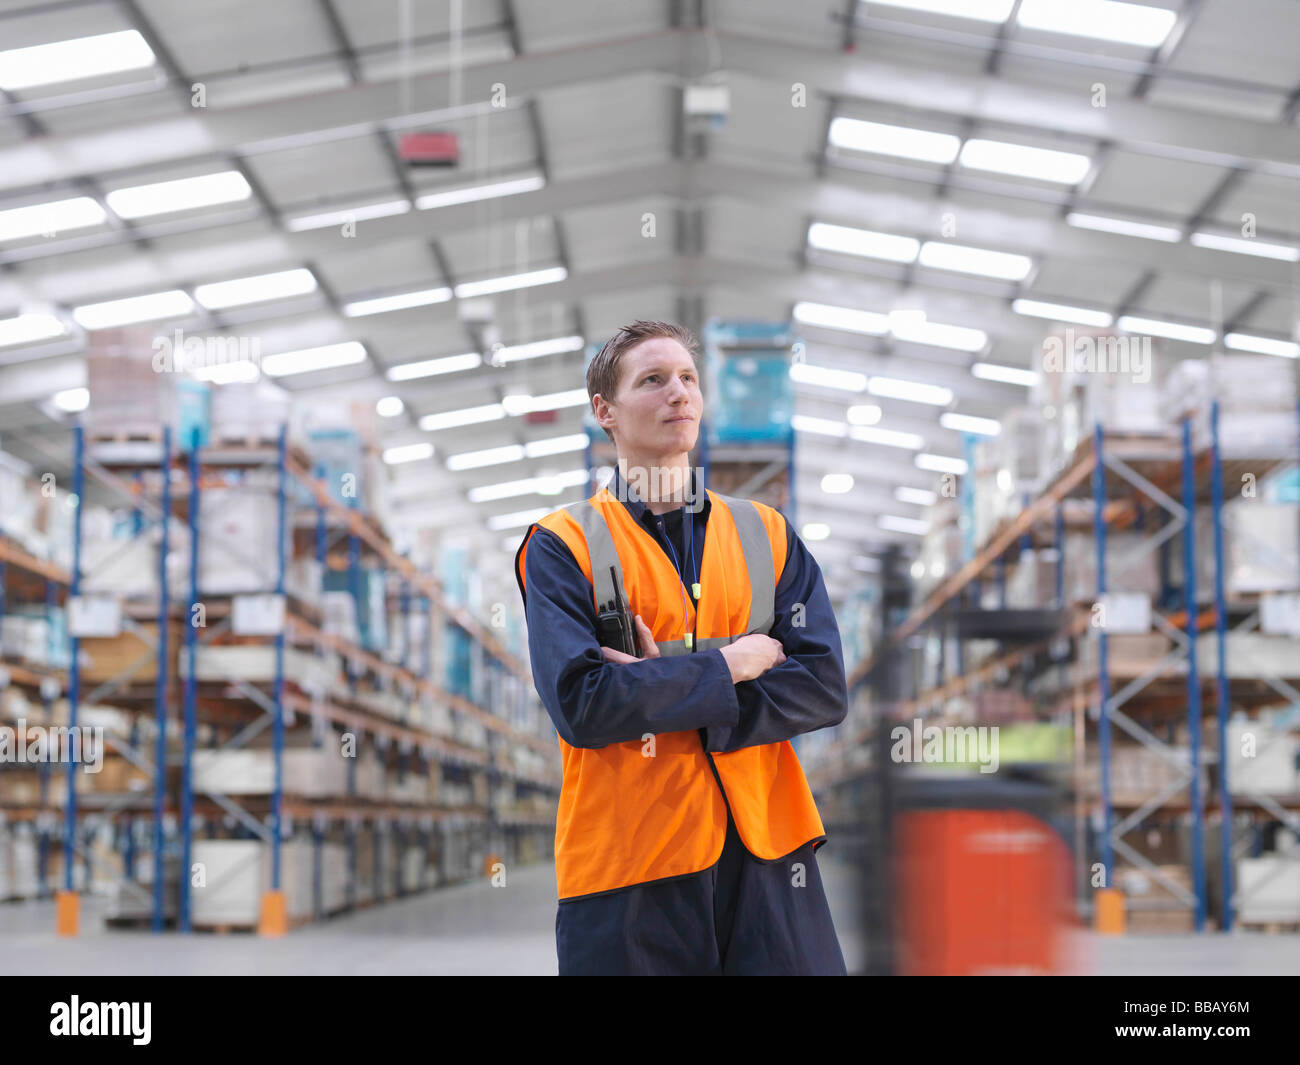 Worker With Walkie Talkie In Warehouse - Stock Image